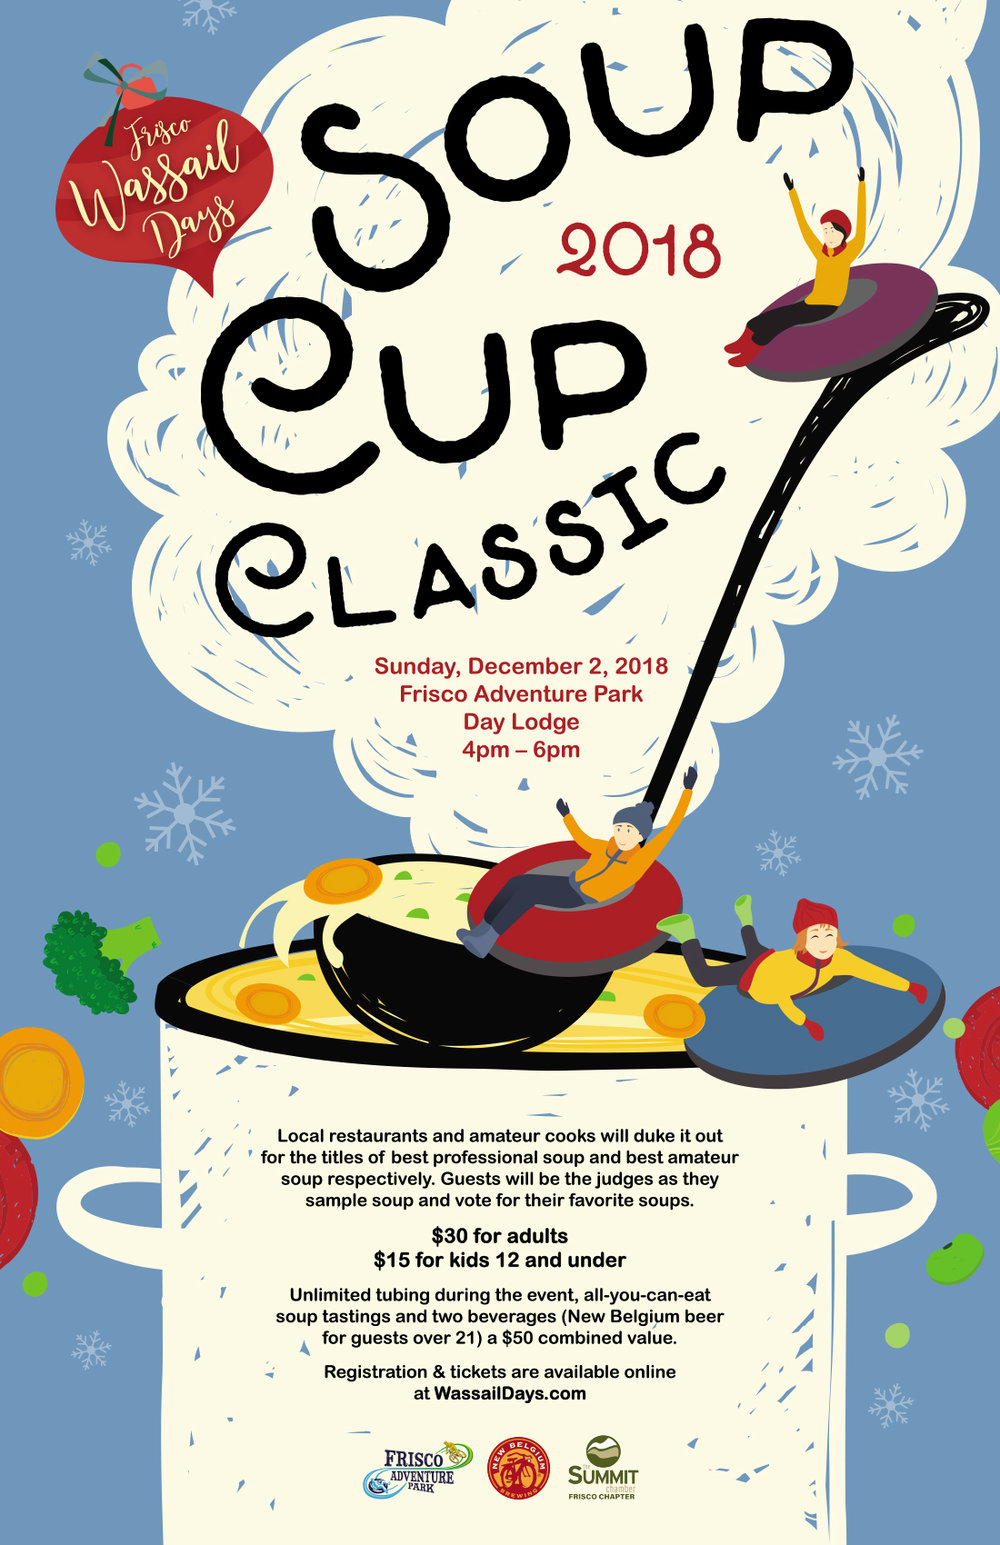 Copy of Soup Cup Classic